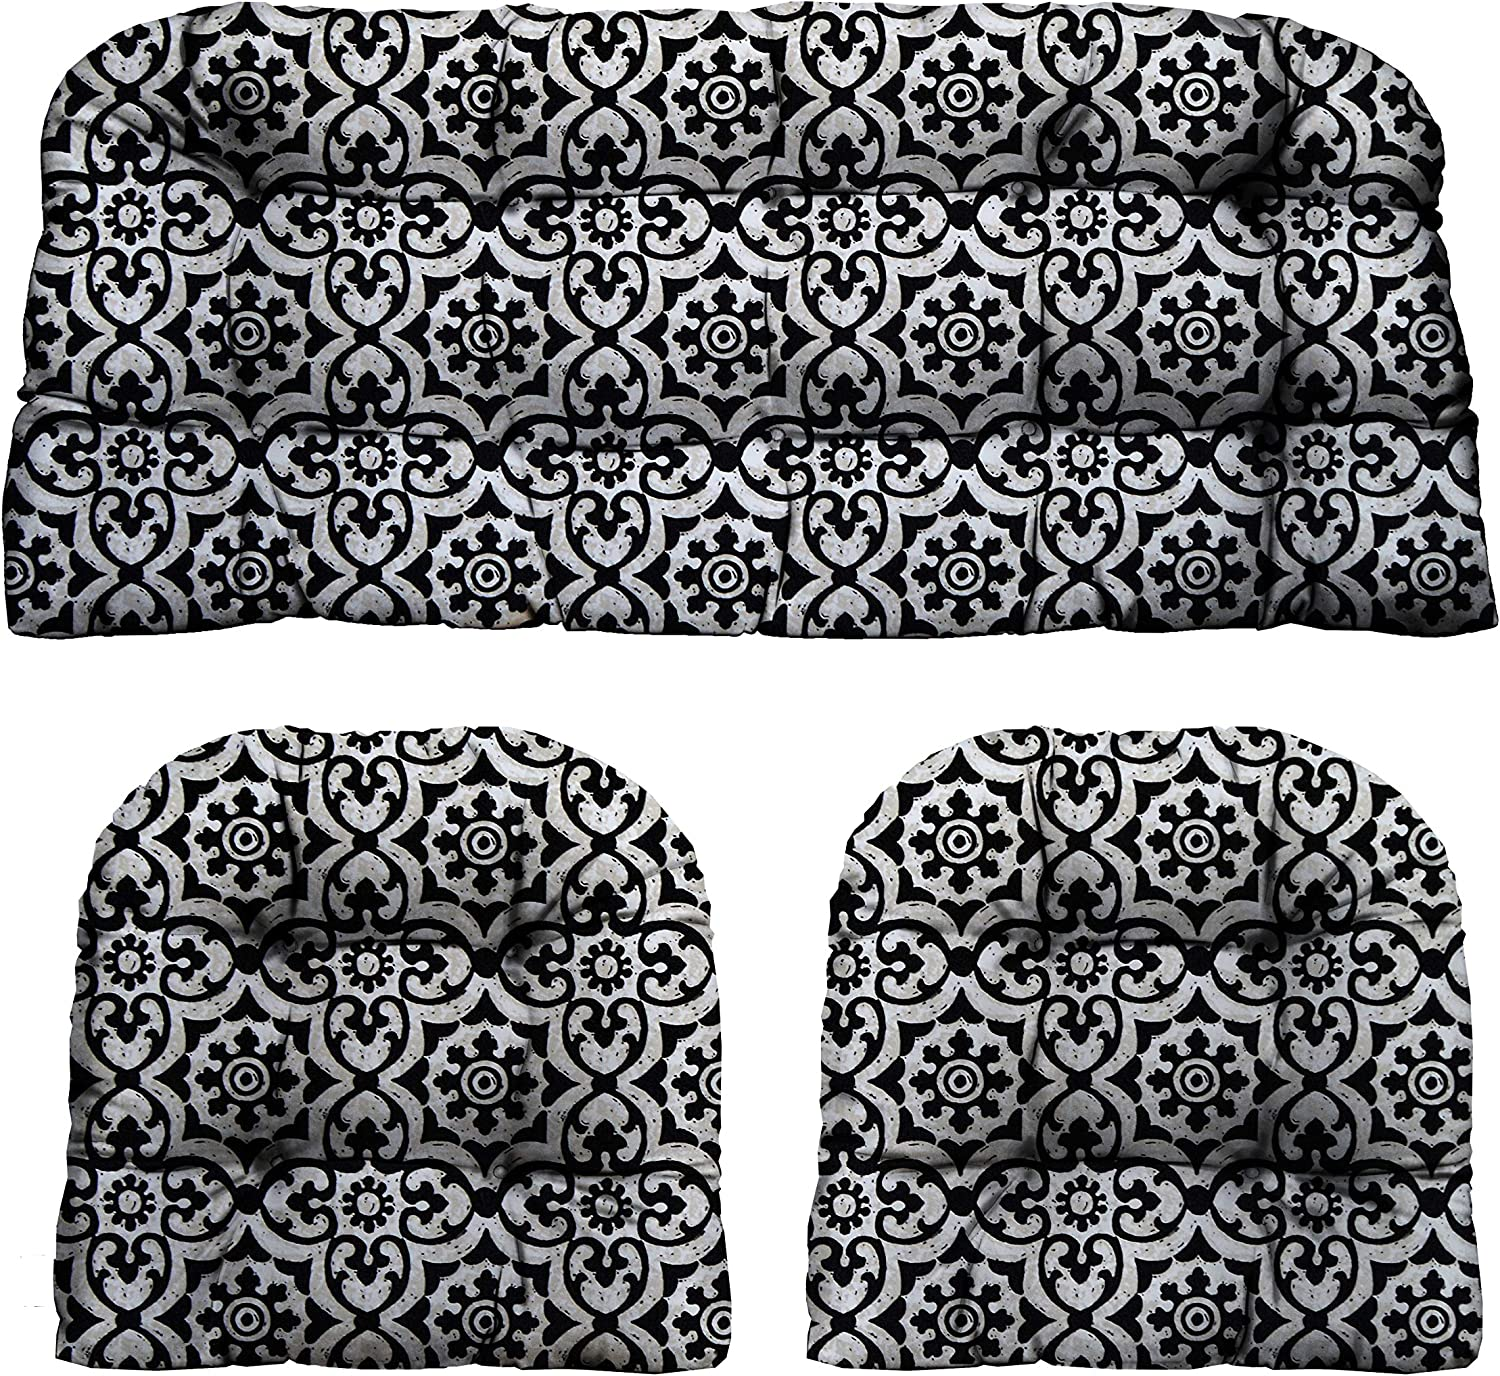 RSH D cor Indoor Outdoor Decorative 3 Piece Tufted Love Seat Settee 2 U-Shaped Chair Cushion Set for Wicker Standard 2-19 x19 41 x19 , Athens Matte Black Fretwork